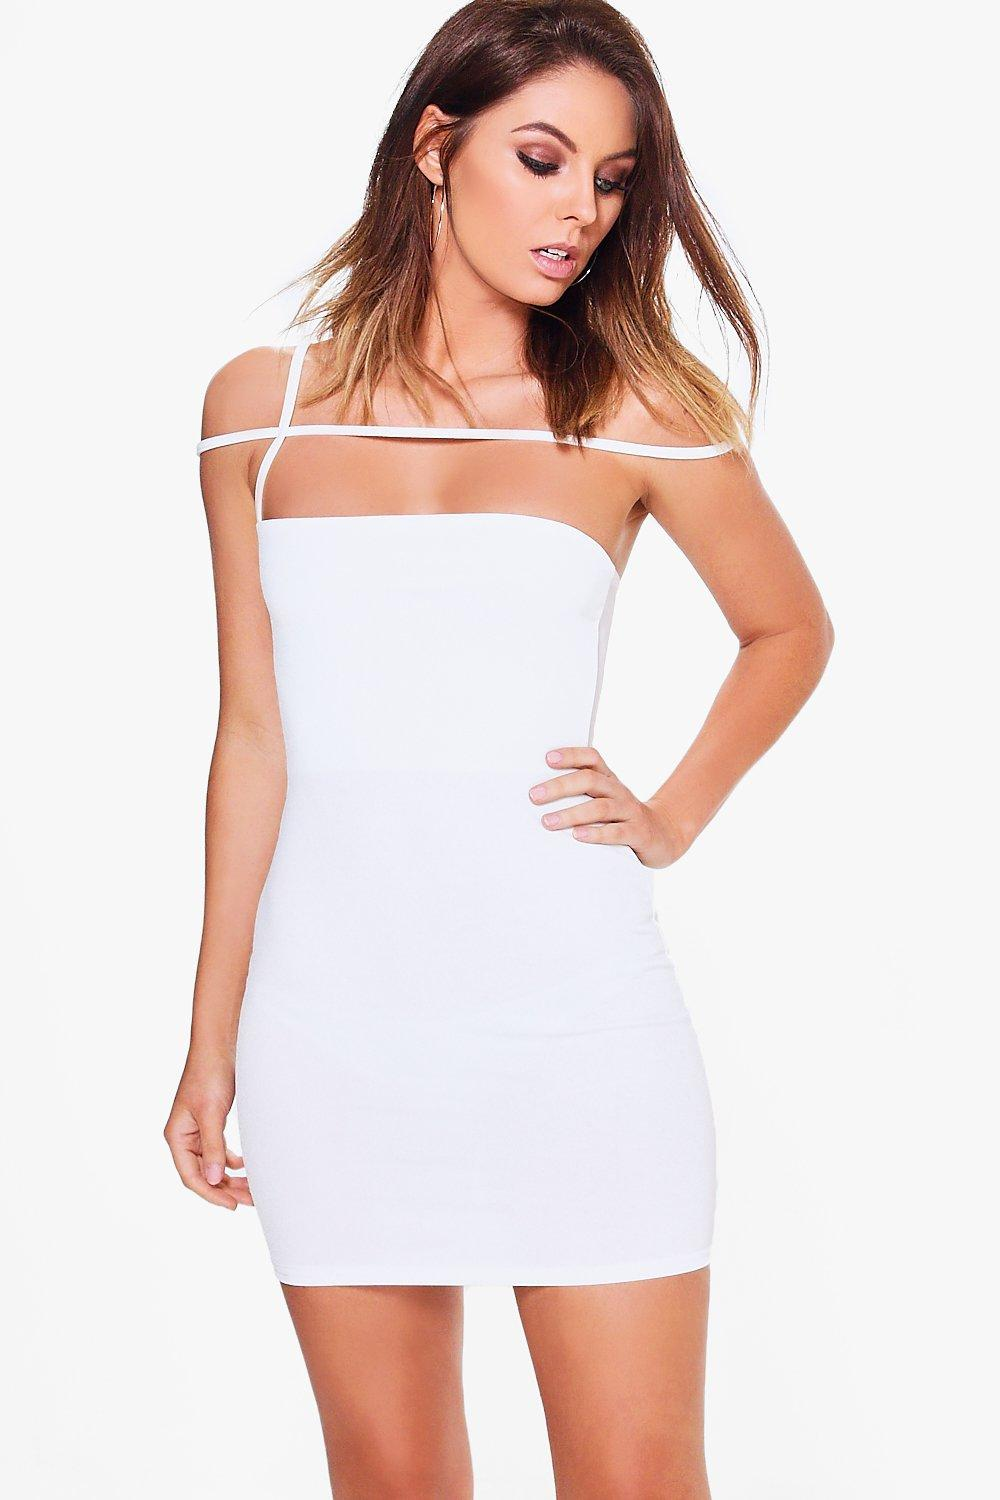 Freyja Strappy Off Shoulder Bodycon Dress